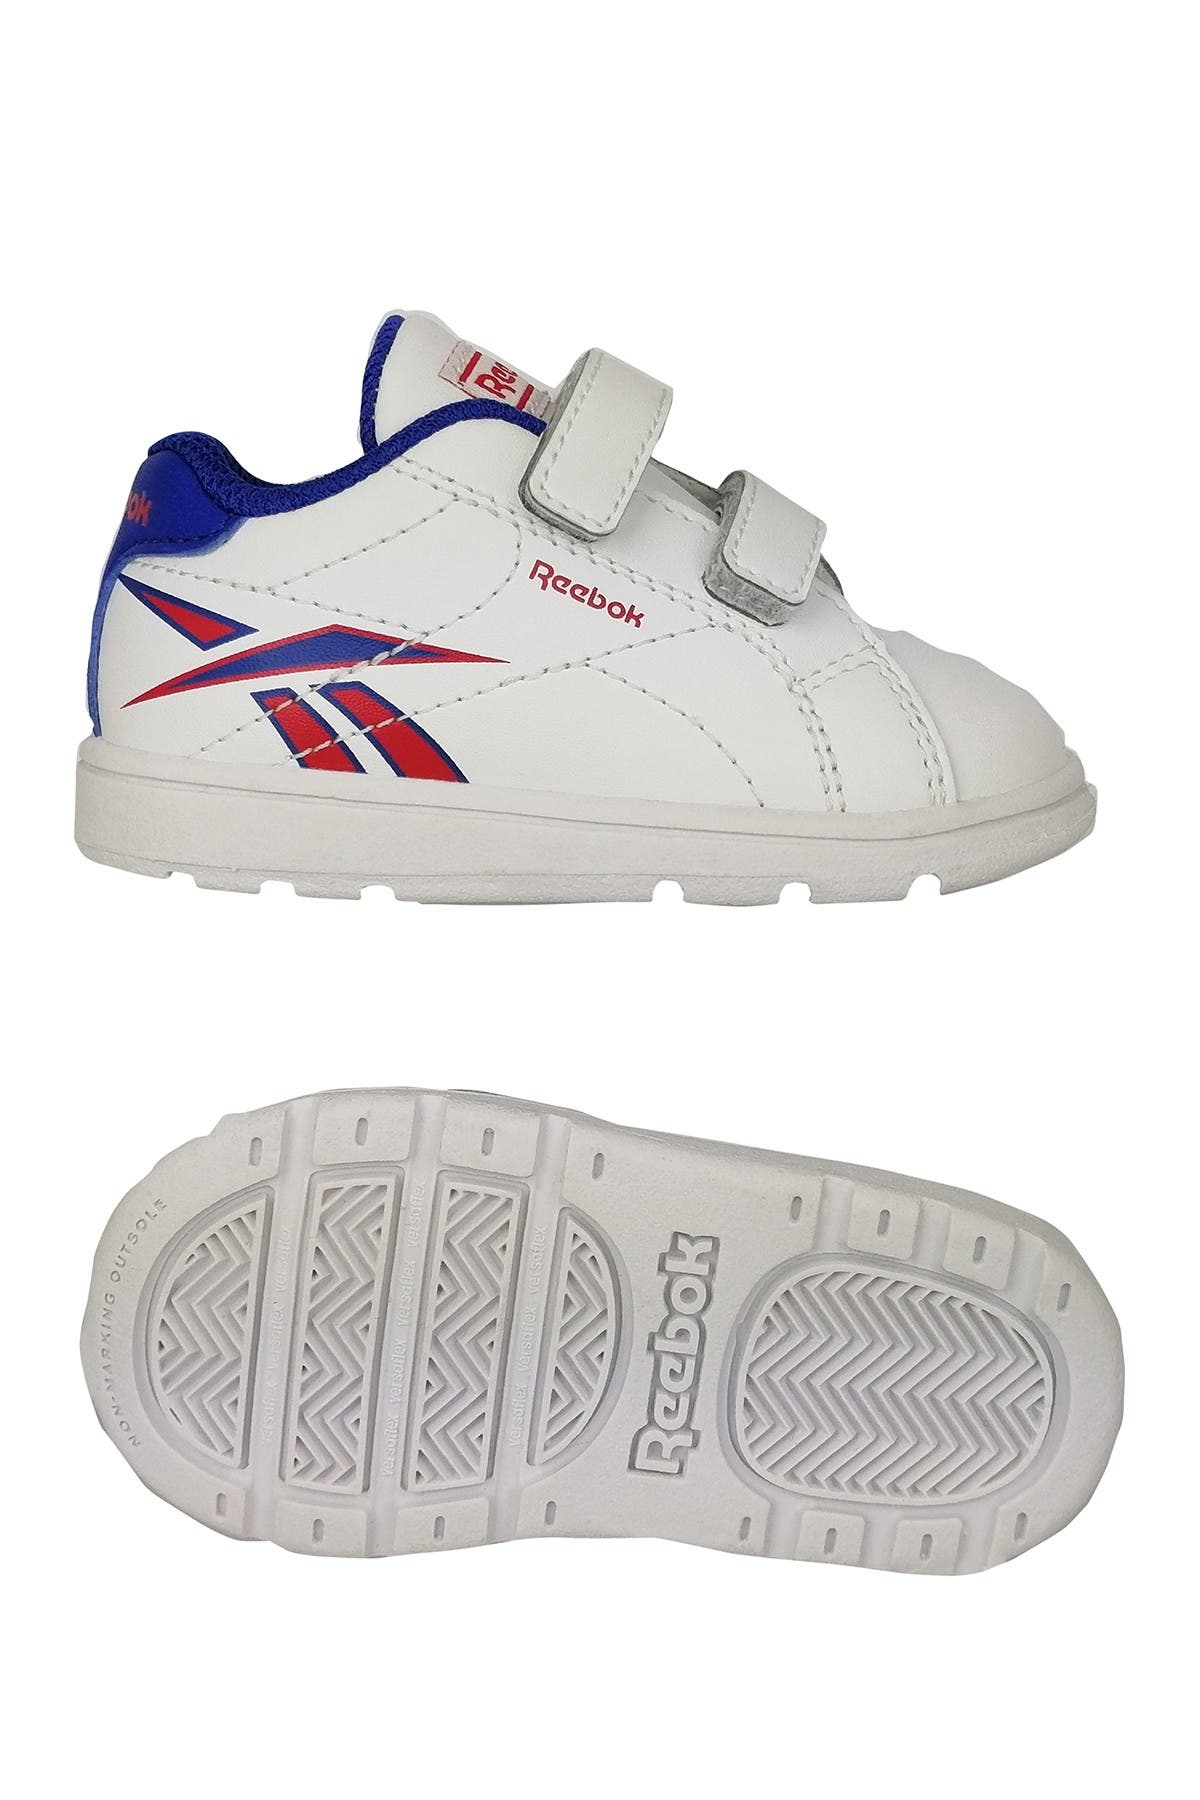 Image of Reebok Royal Double Strap Complete Clean Sneaker